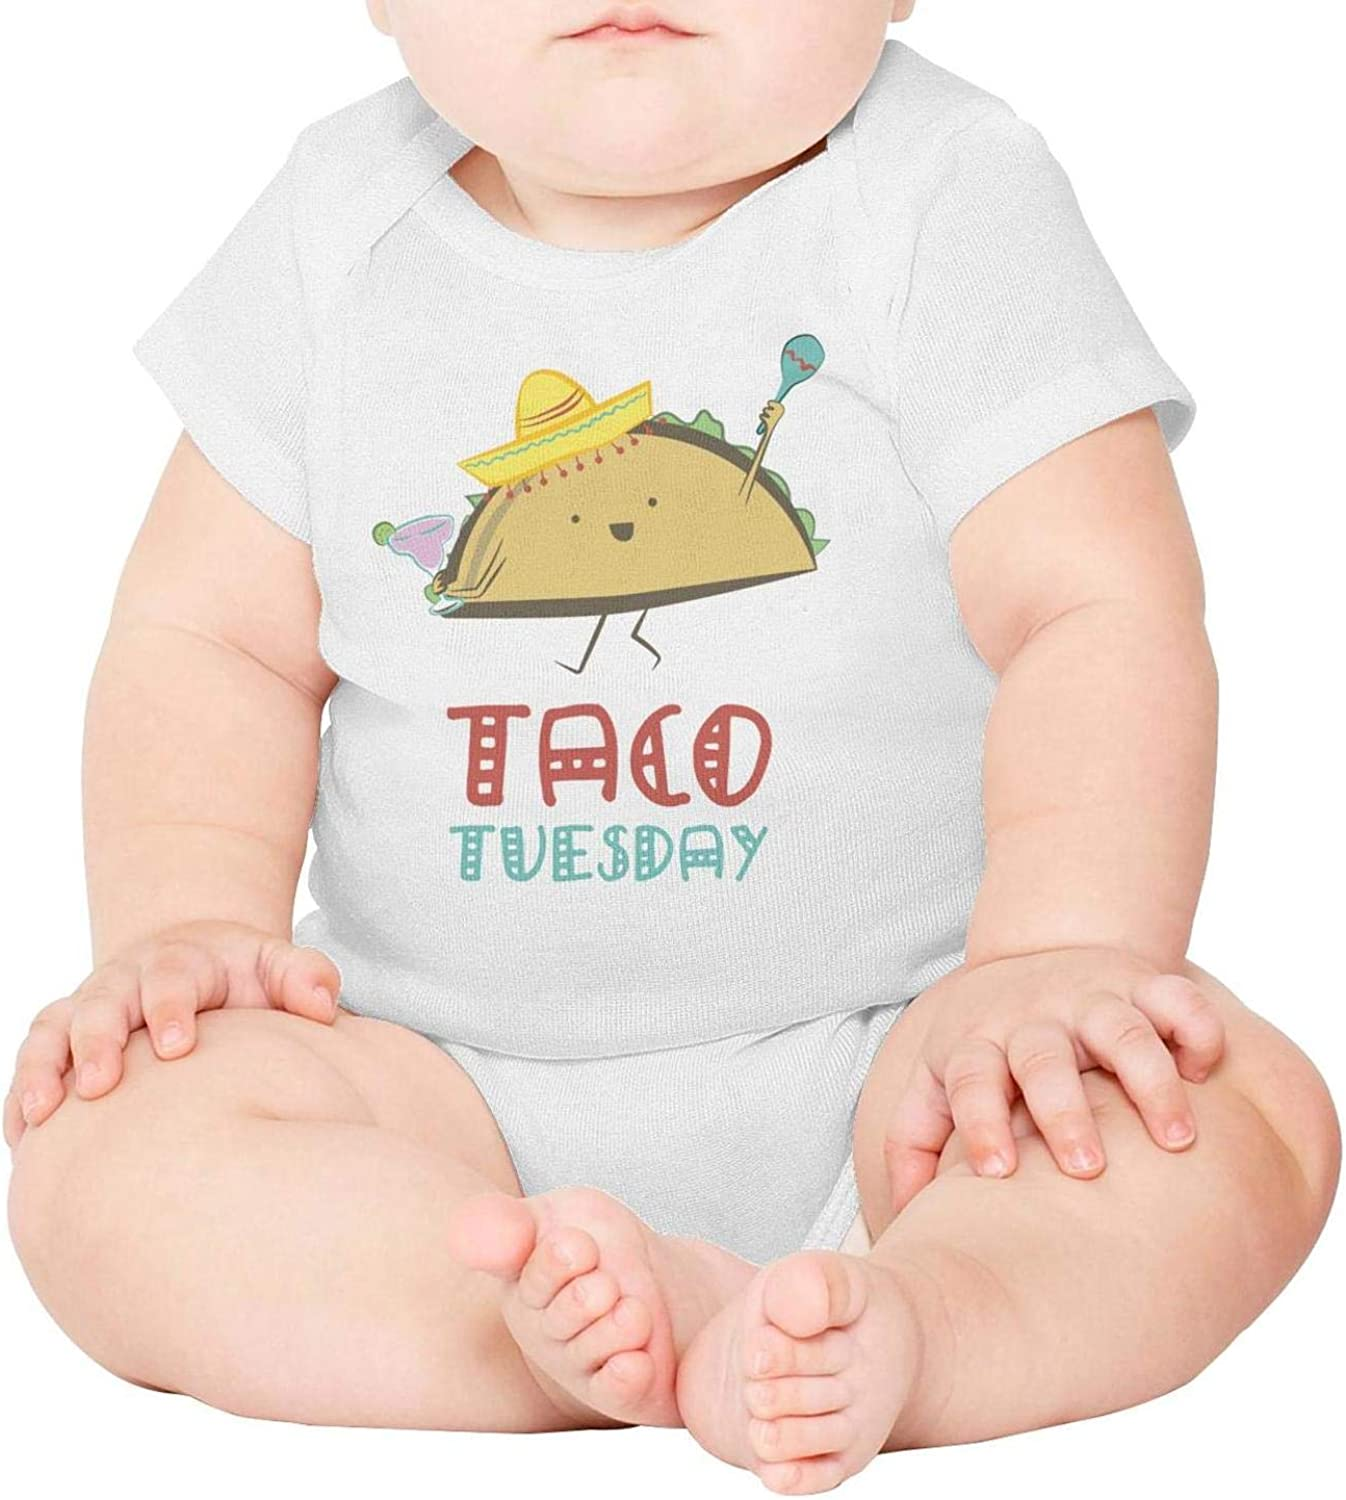 Baby Onesies Taco Tuesday Cartoon 100/% Cotton Bodysuits Super Power Short Sleeve Bodysuit